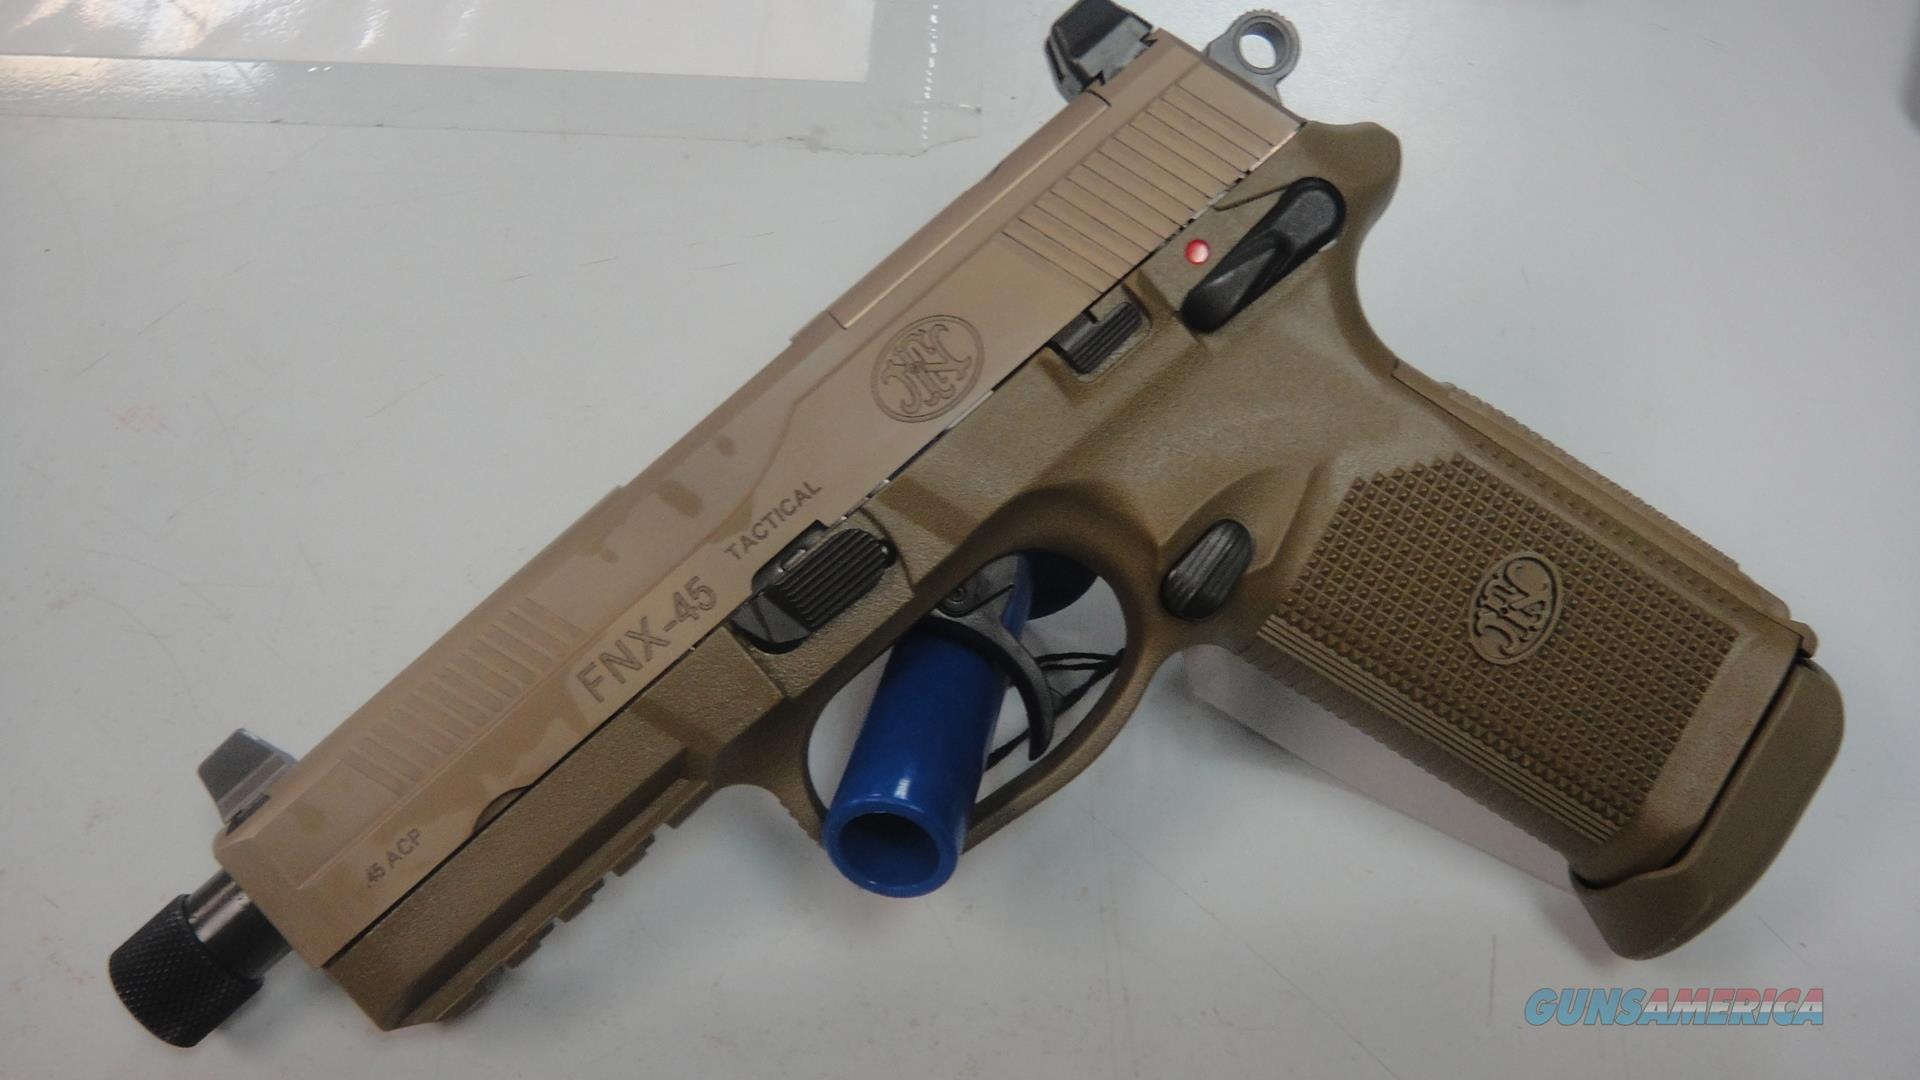 FNH FNX-45 Tactical (used)  Guns > Pistols > FNH - Fabrique Nationale (FN) Pistols > FNX